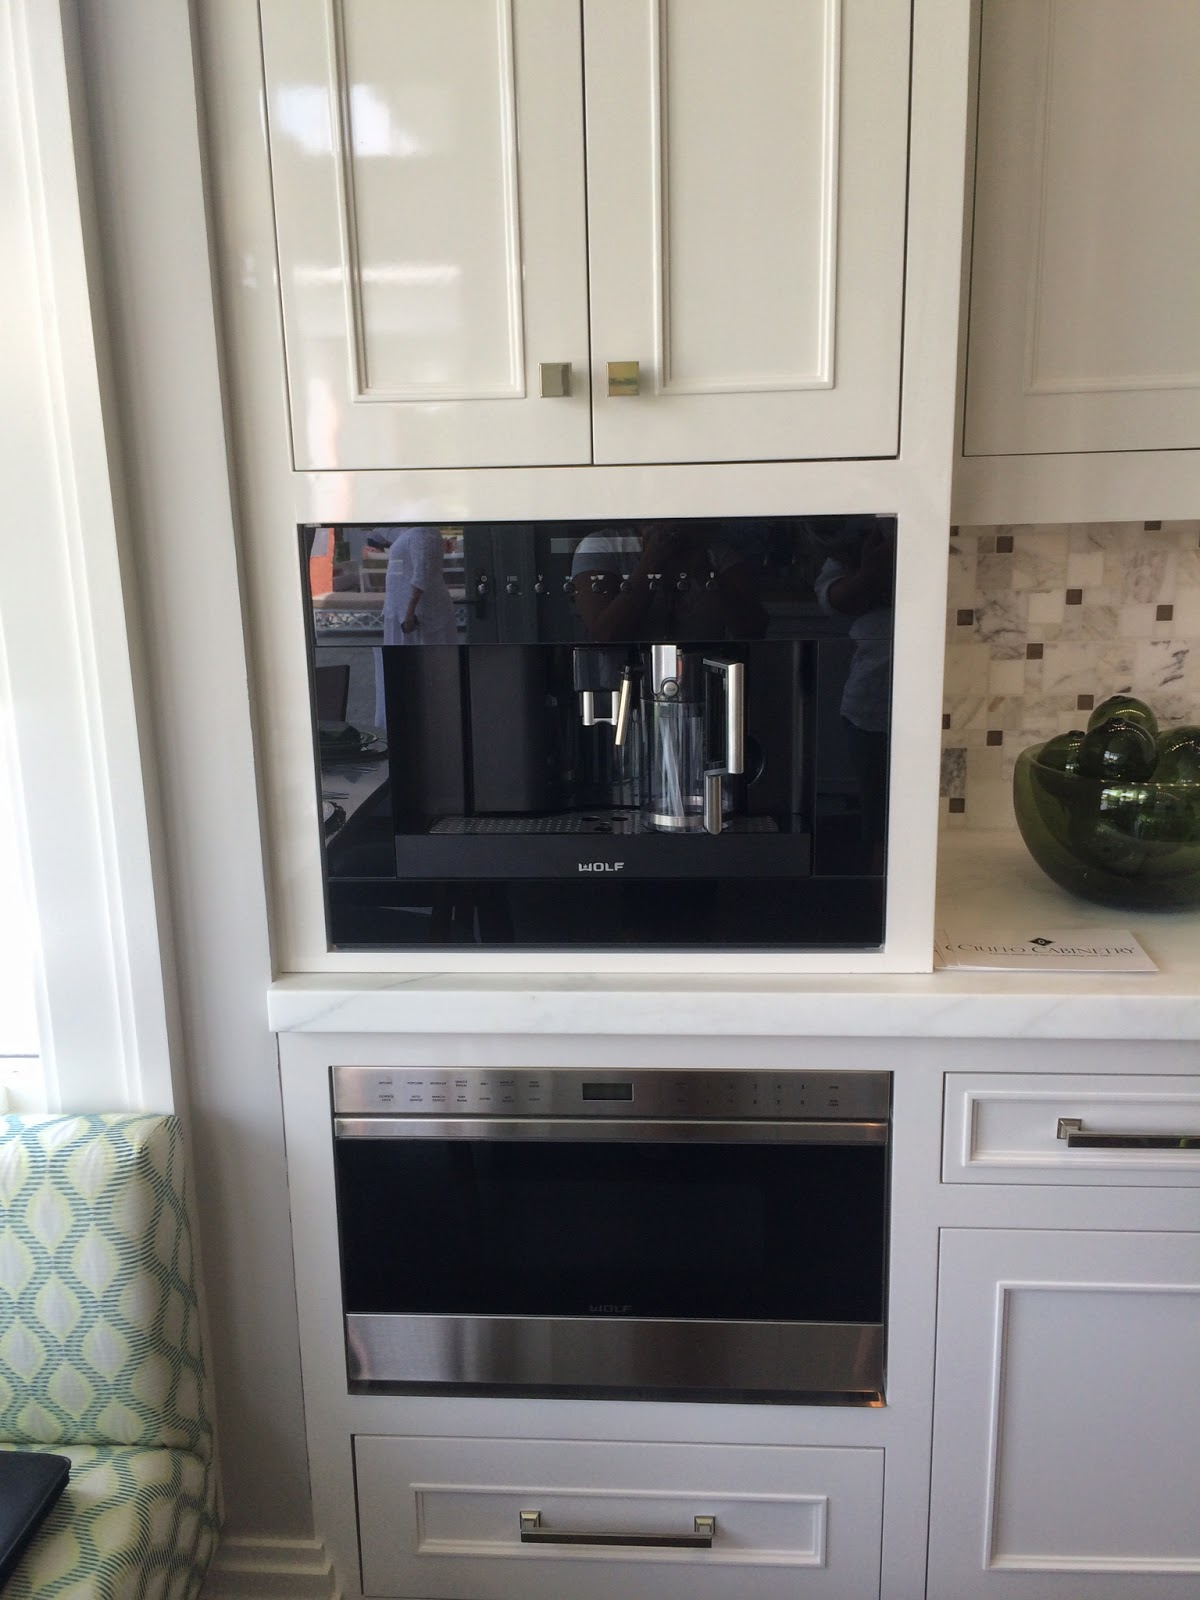 Built in coffee makers are becoming as standard as microwaves ~ I'm